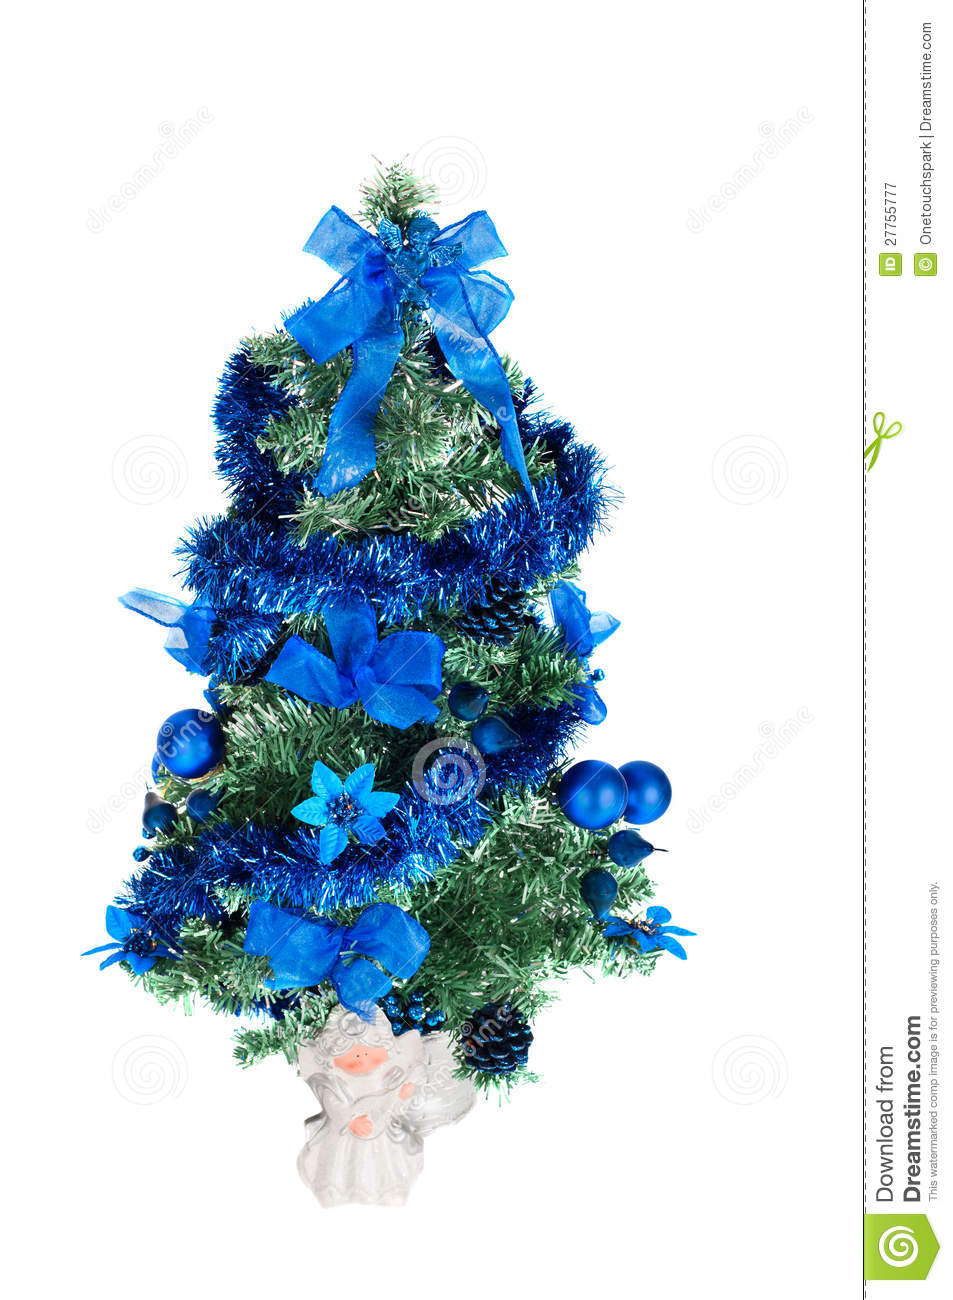 Christmas tree decorated with blue toys and angel royalty free stock